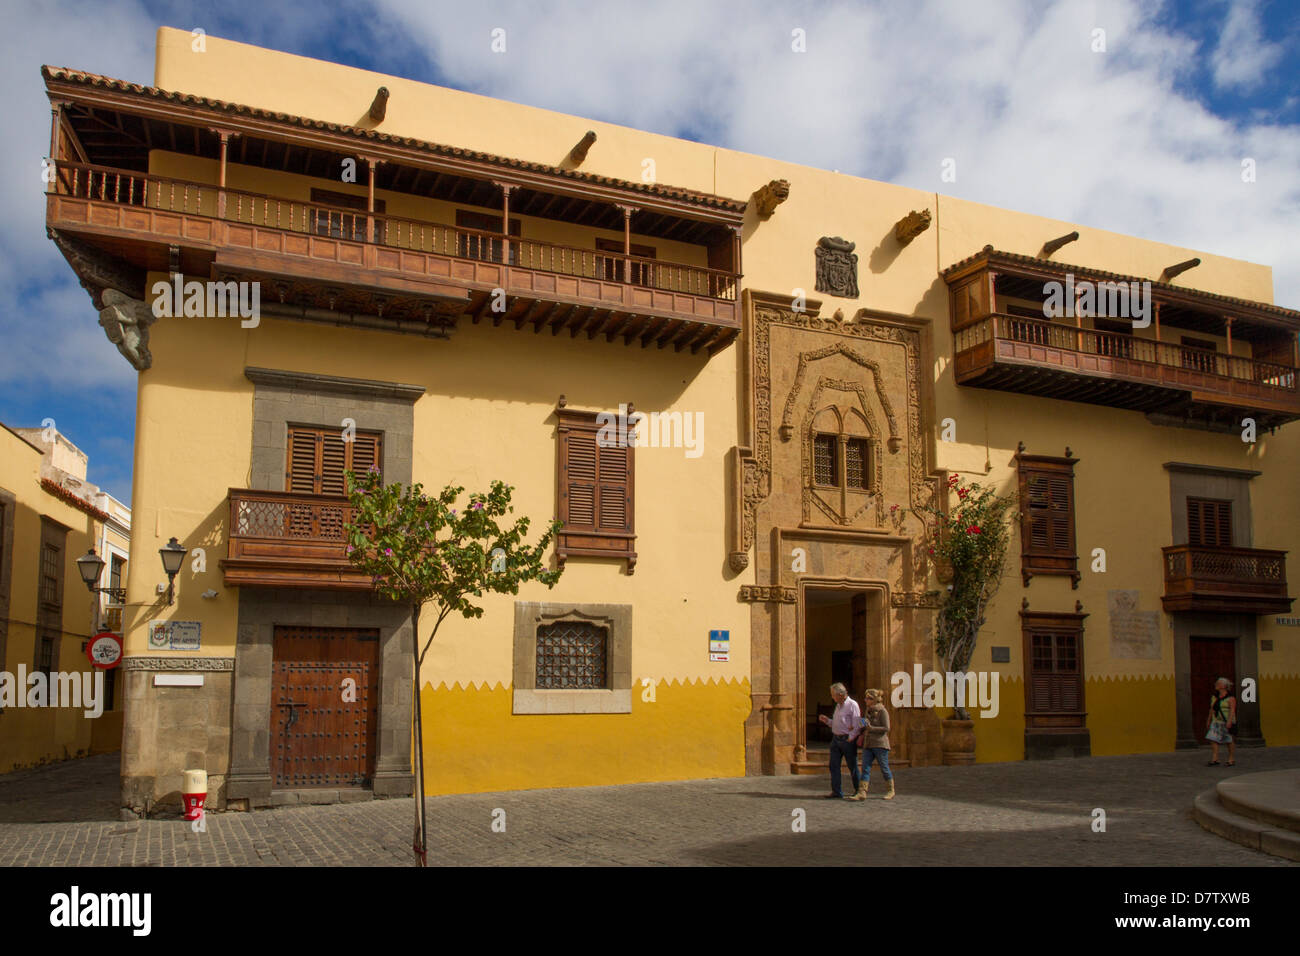 Museum-Residence of Columbus (Colon), Las Palmas, Canary Islands, Spain - Stock Image